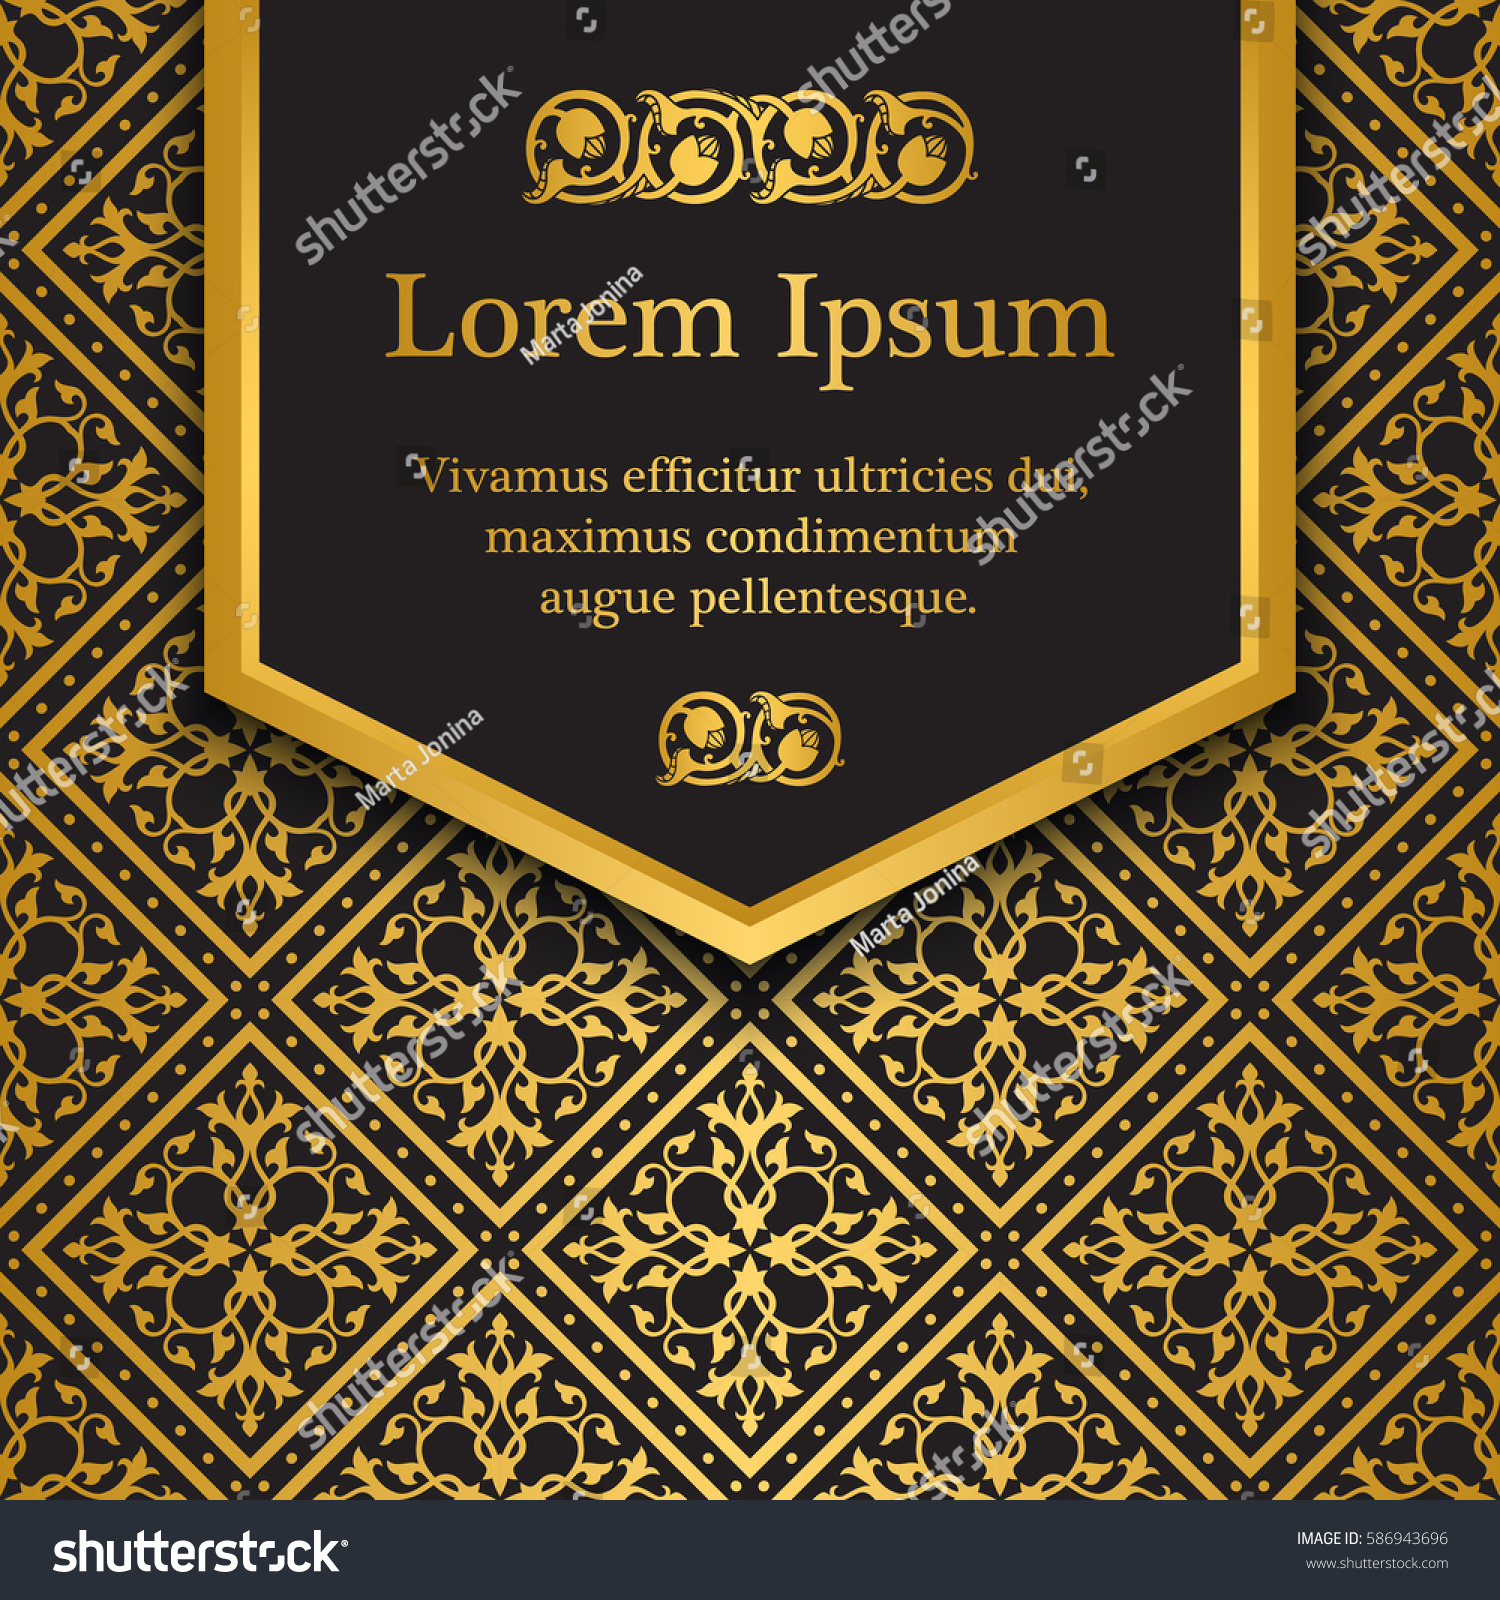 Quran Book Cover Template : Background gold floral pattern inspired by stock vector